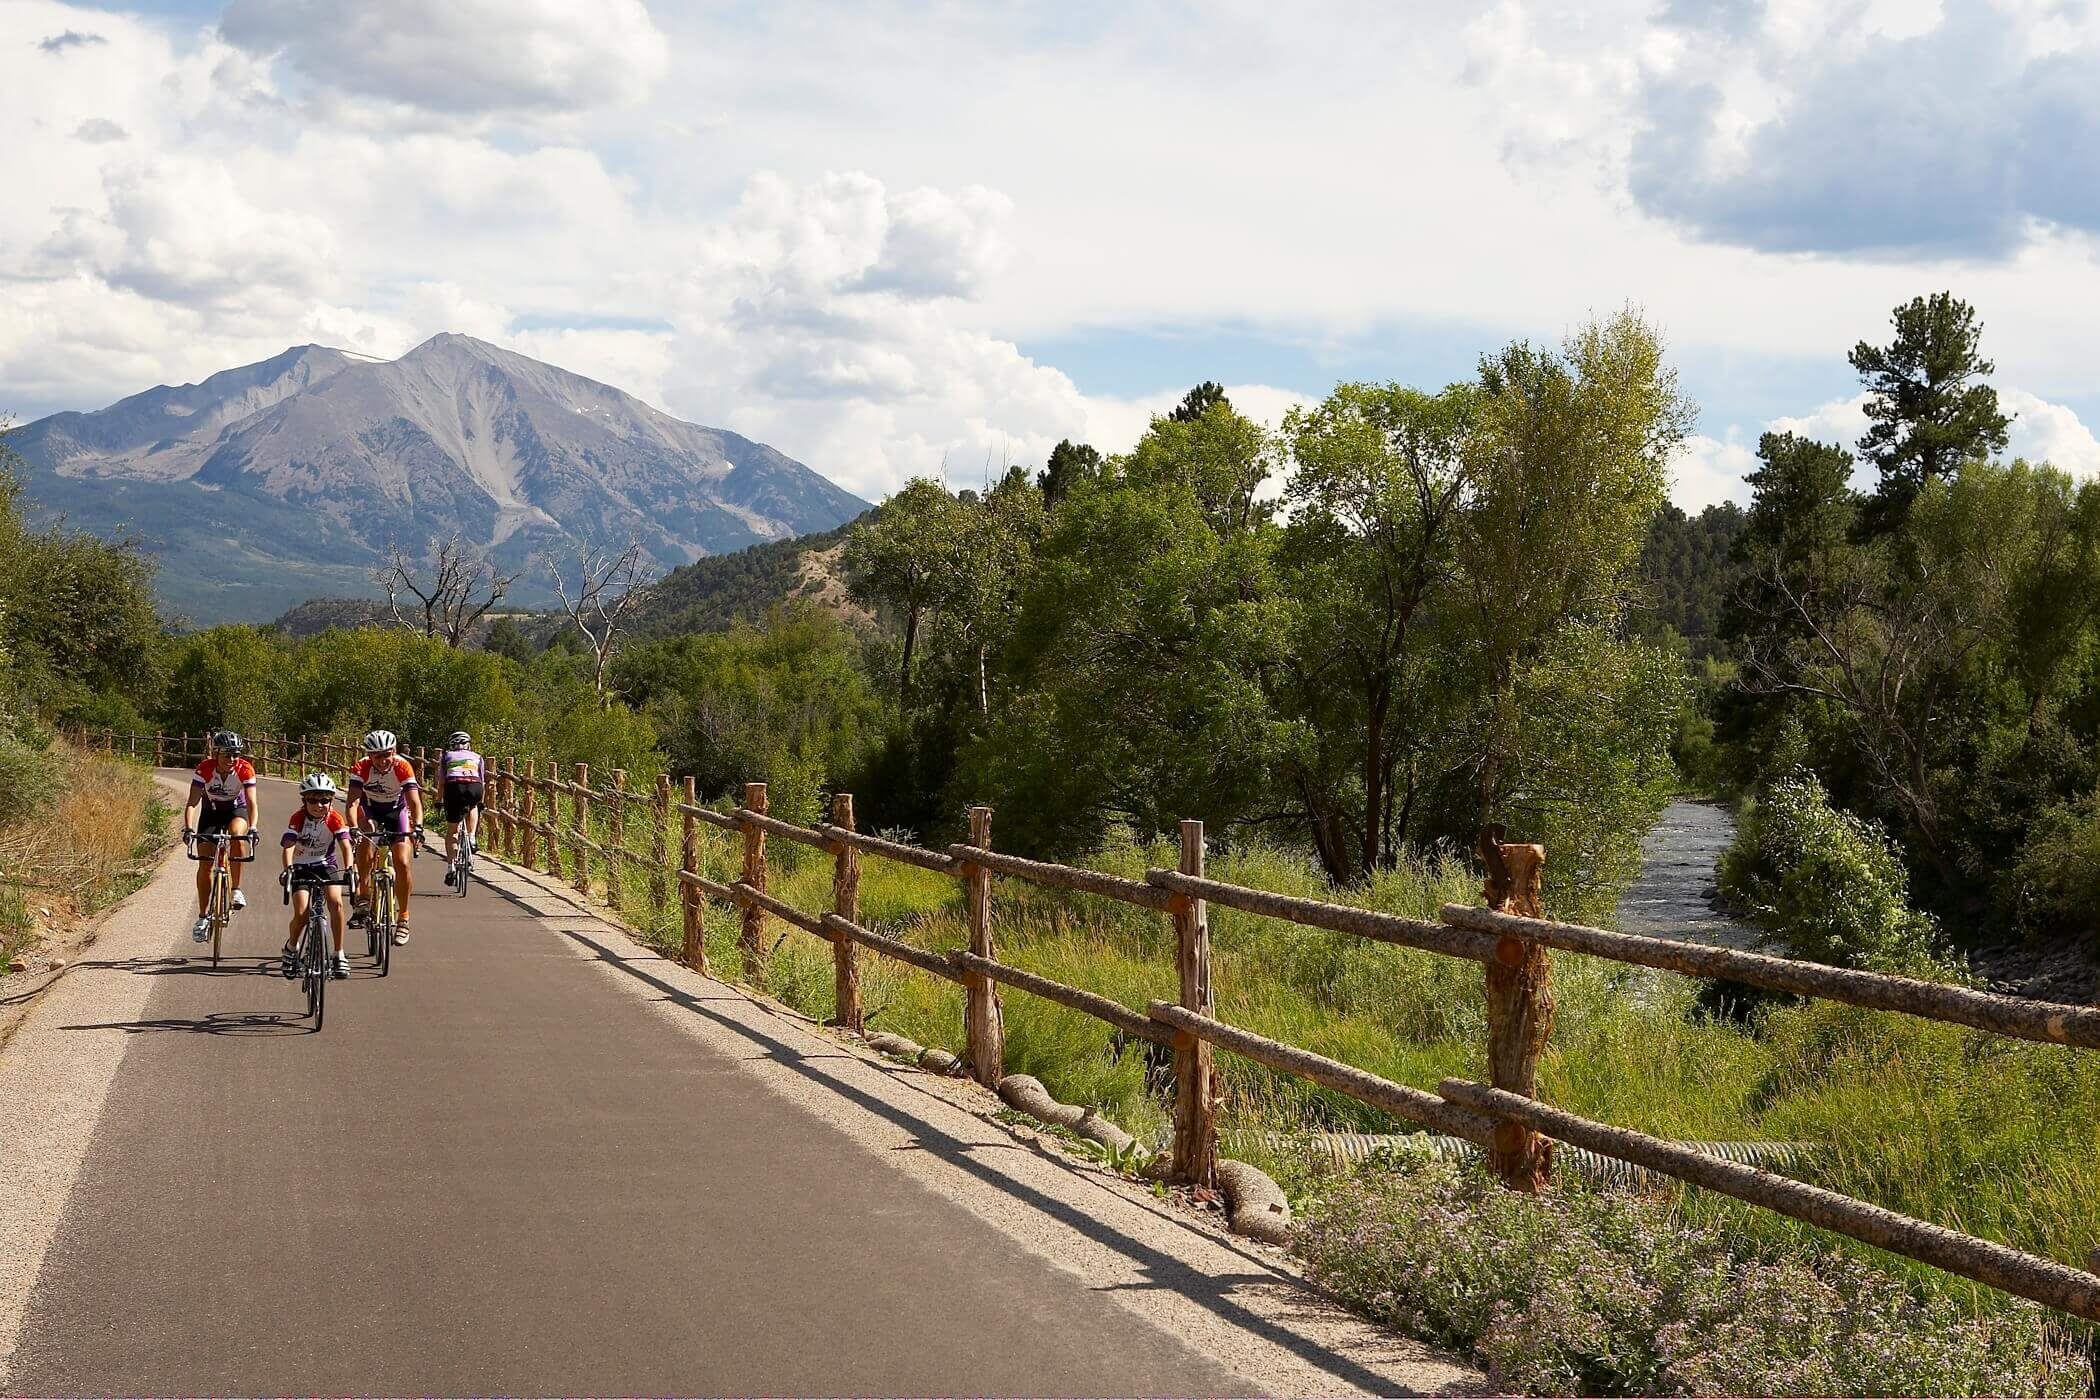 Glenwood Springs Activities Iron Mountain Hot Springs